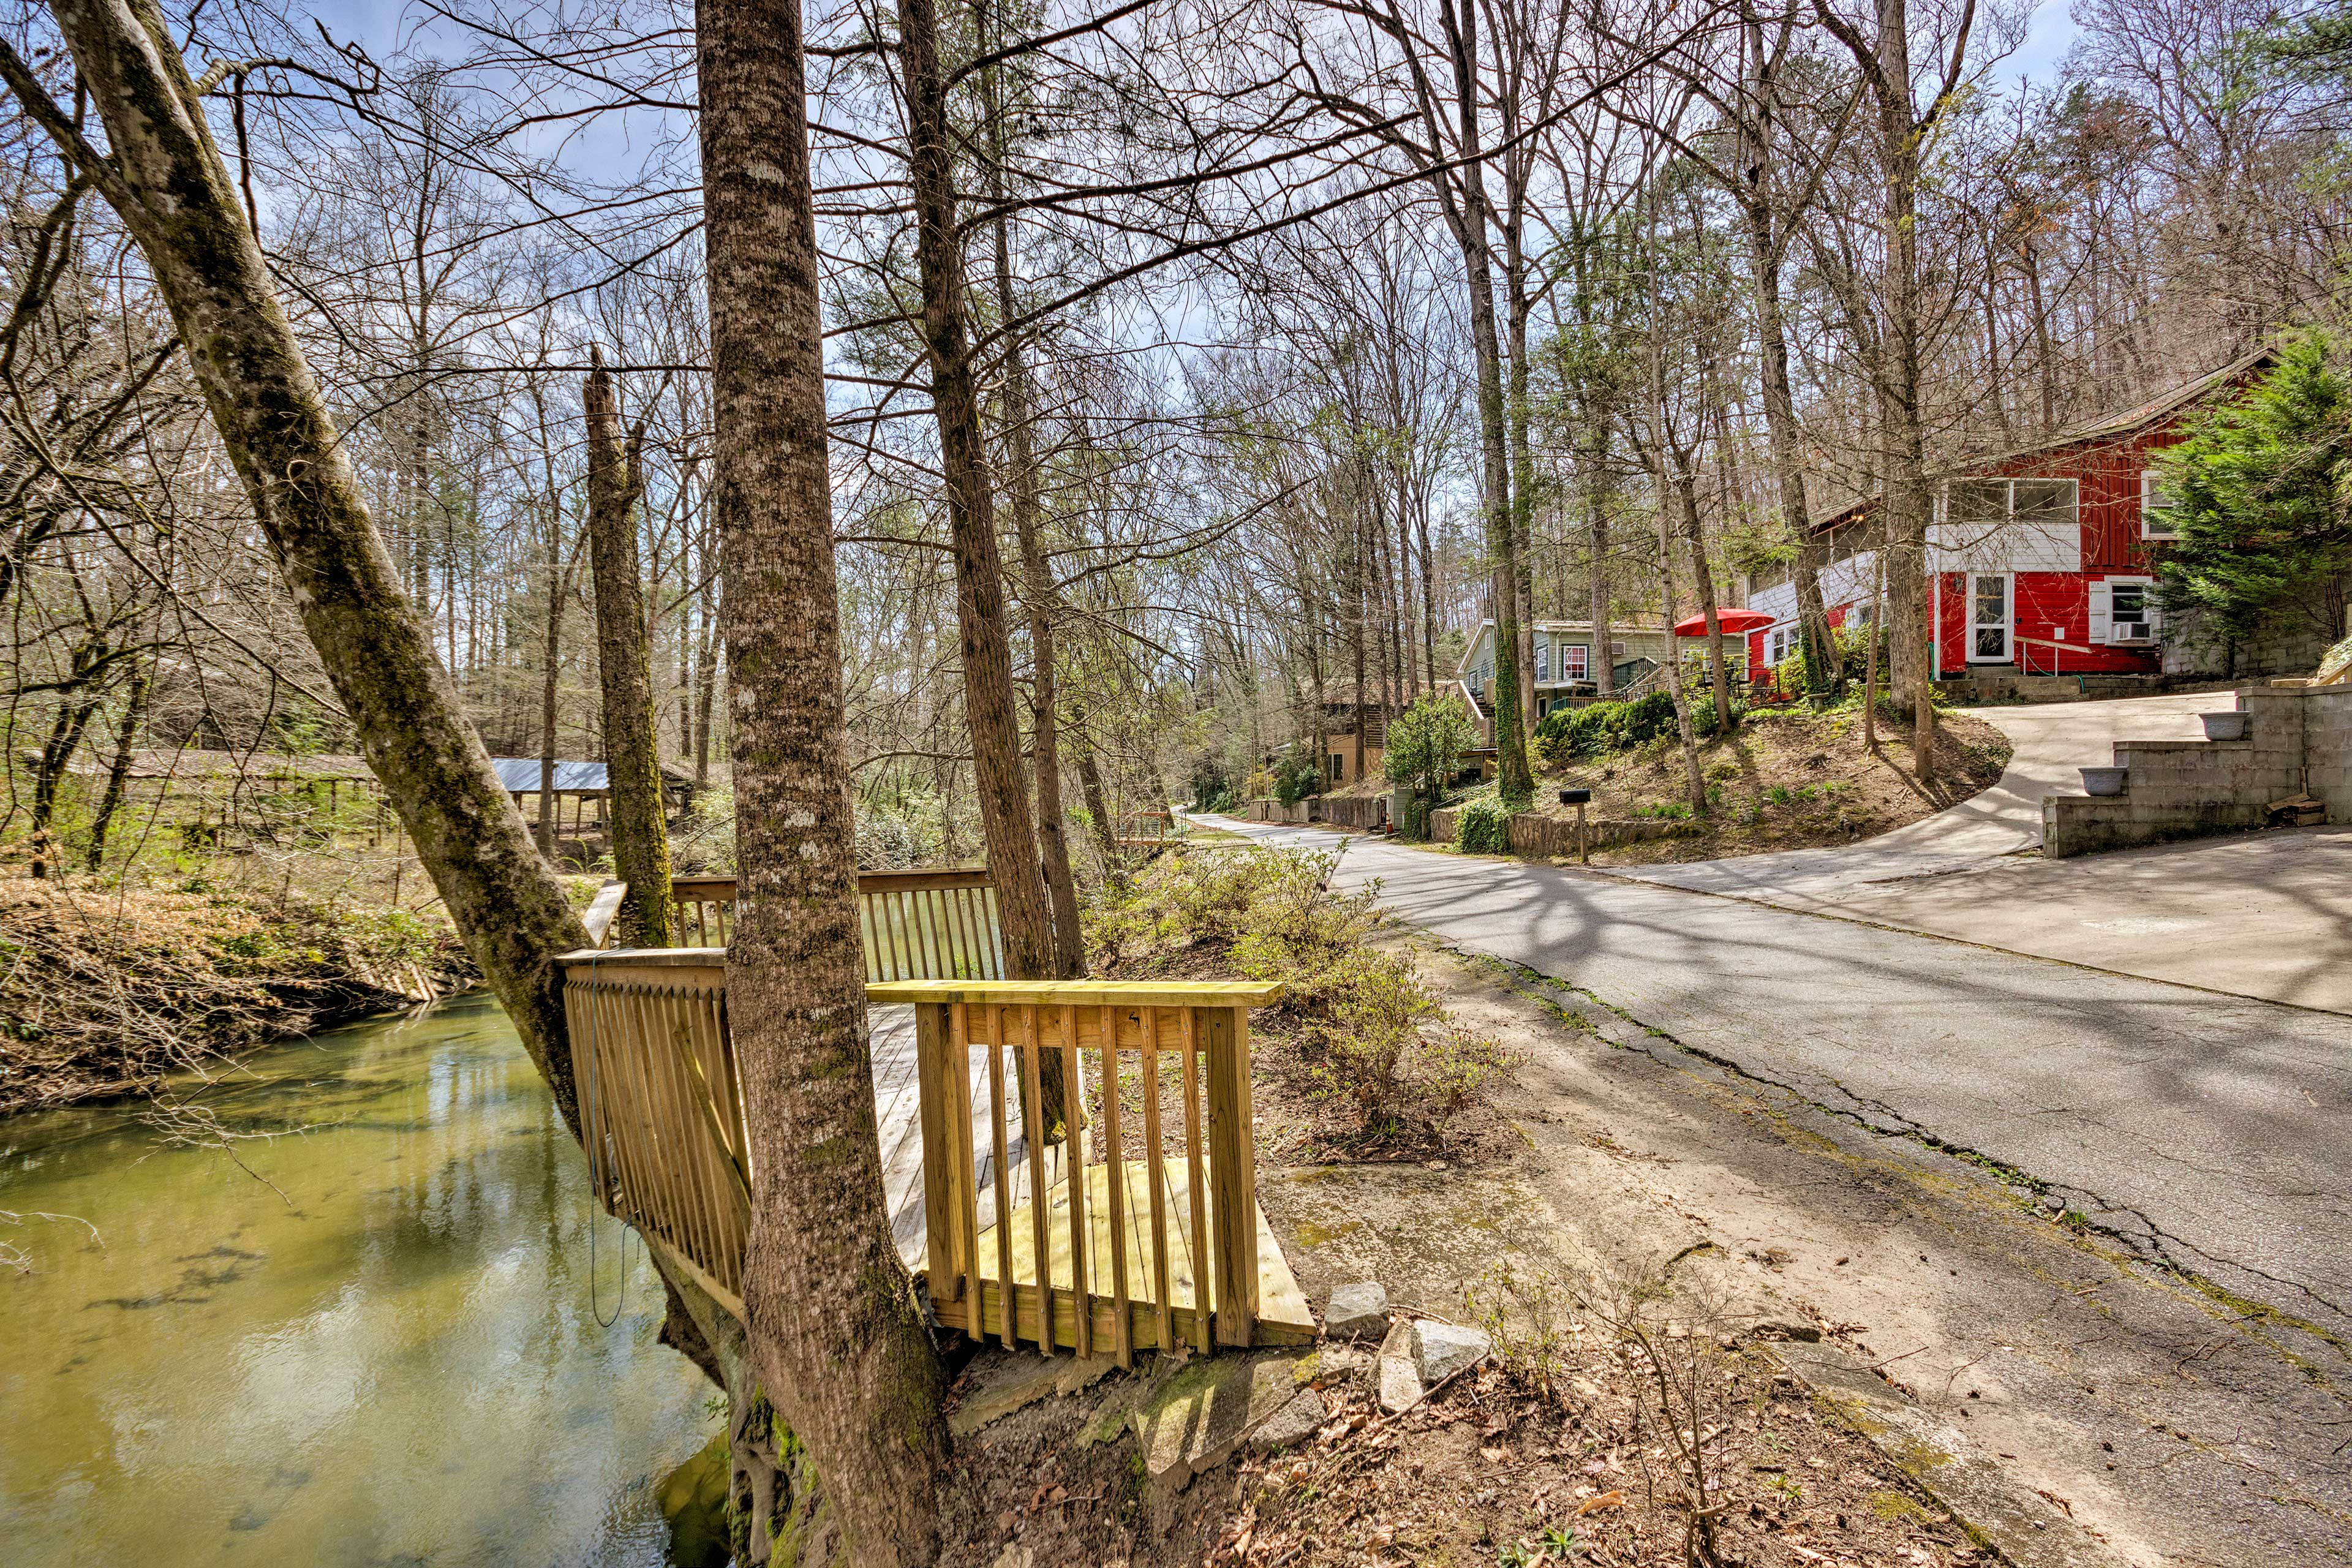 Just across the street, you can fish the South Saluda River!